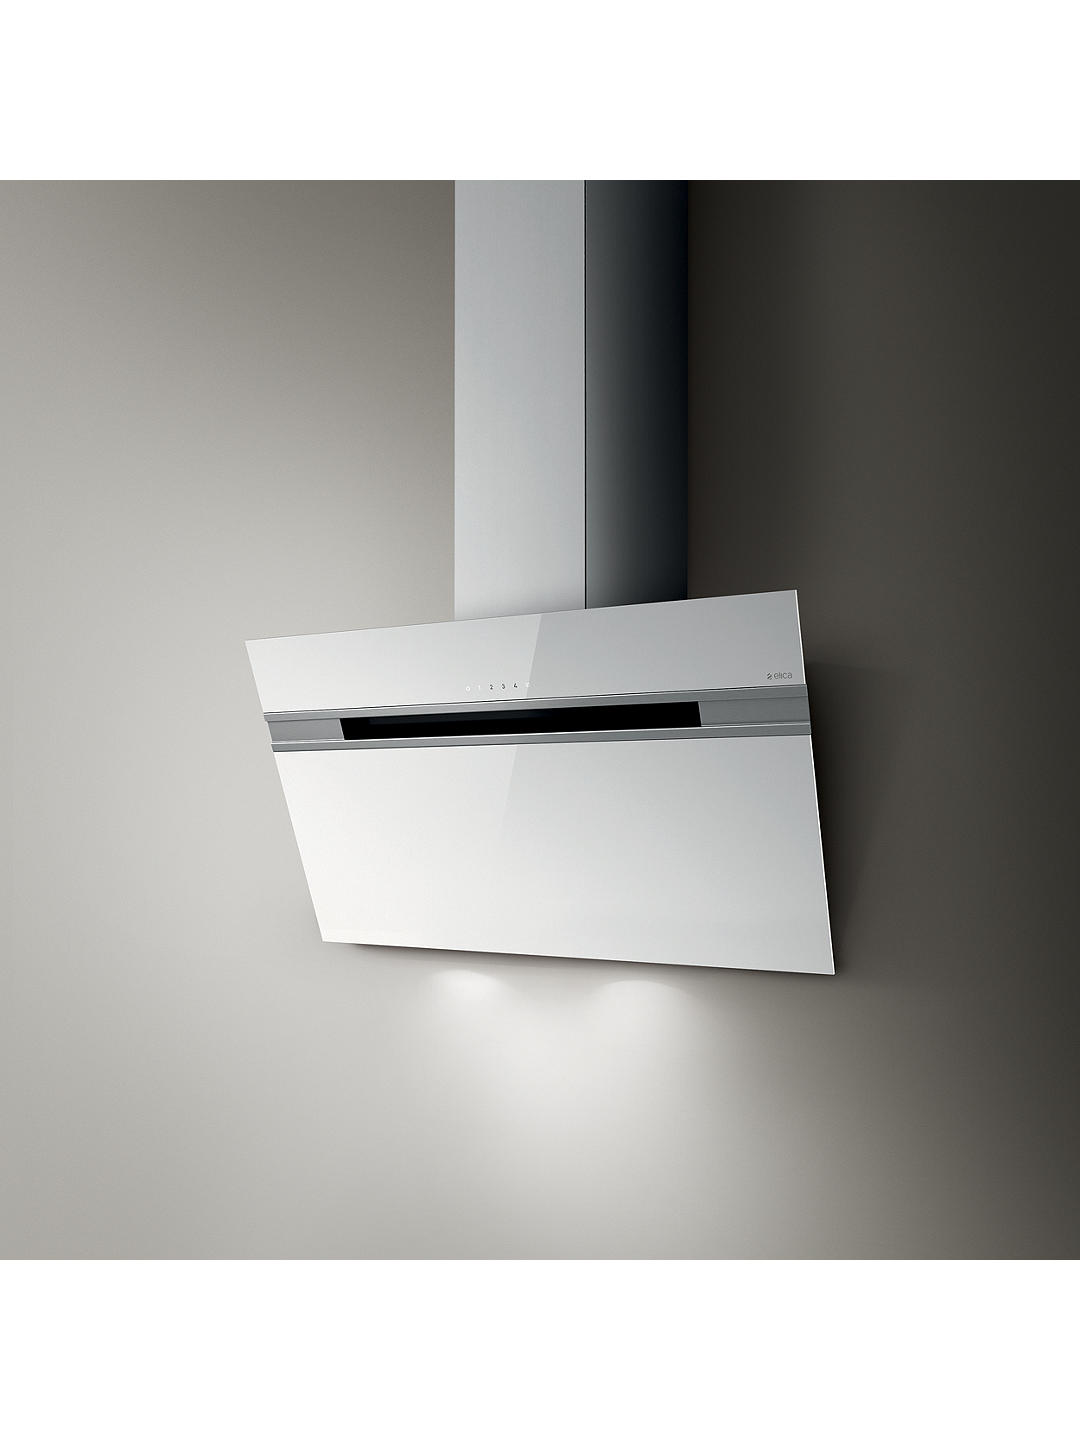 Buy Elica Ascent LED 90cm Wall Mounted Chimney Cooker Hood, White Glass Online at johnlewis.com